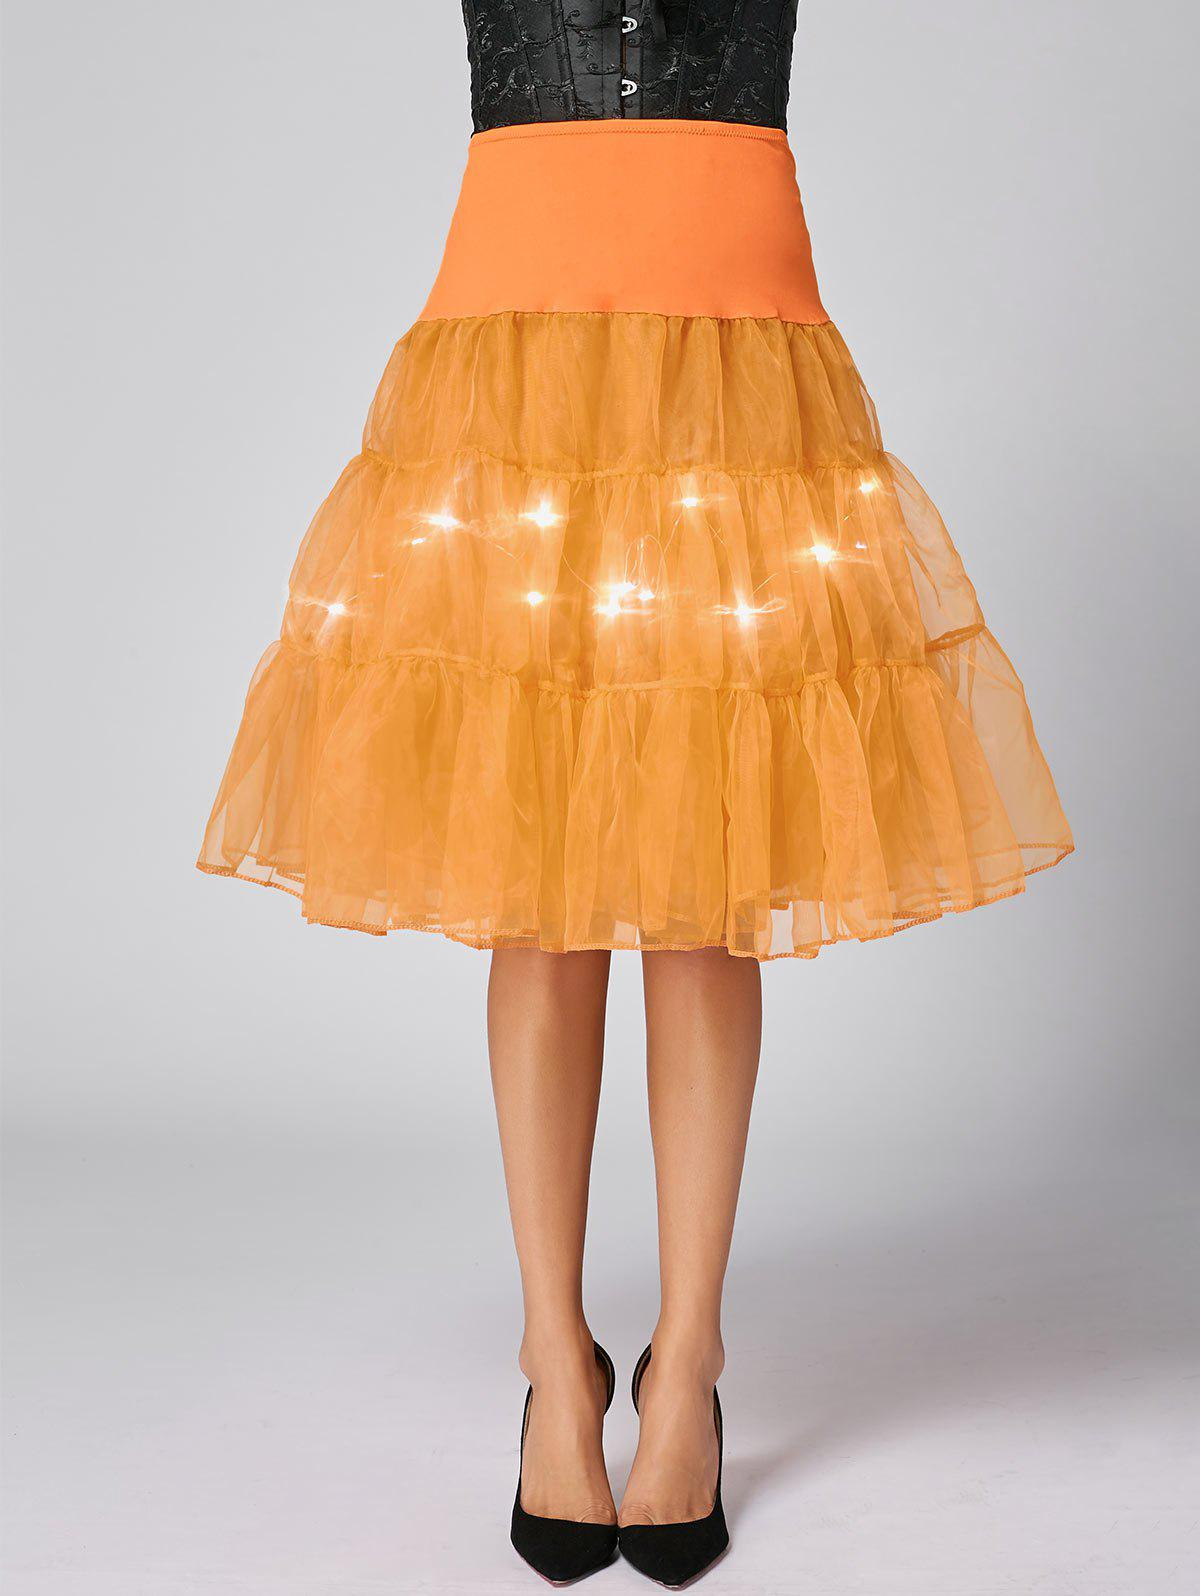 Flounce Light Up Cosplay Jupe - Orange XL